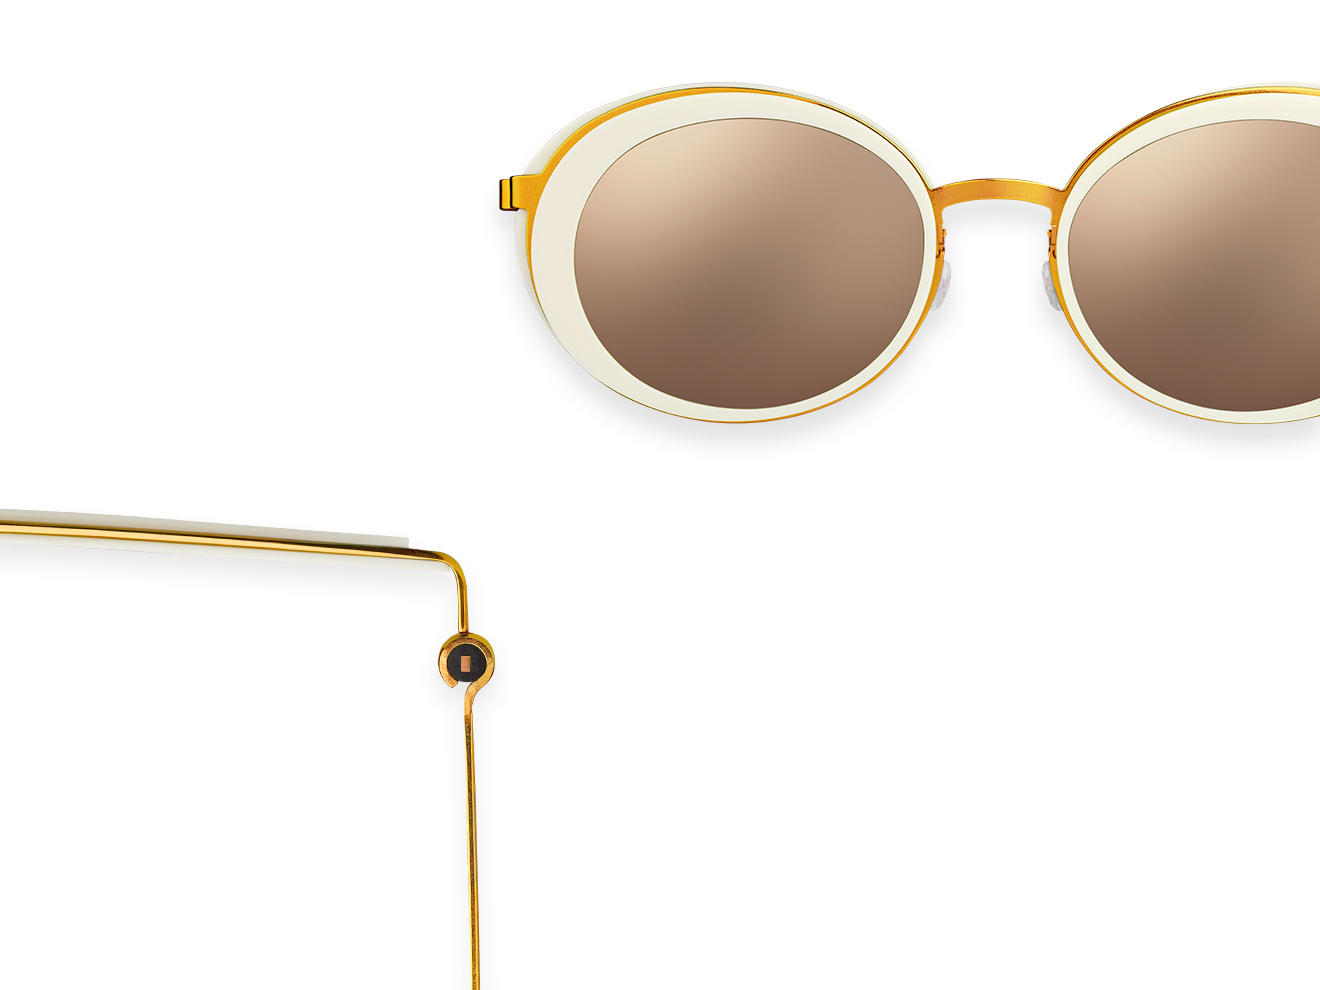 Take a dip with Monocle and LINDBERG sunglasses